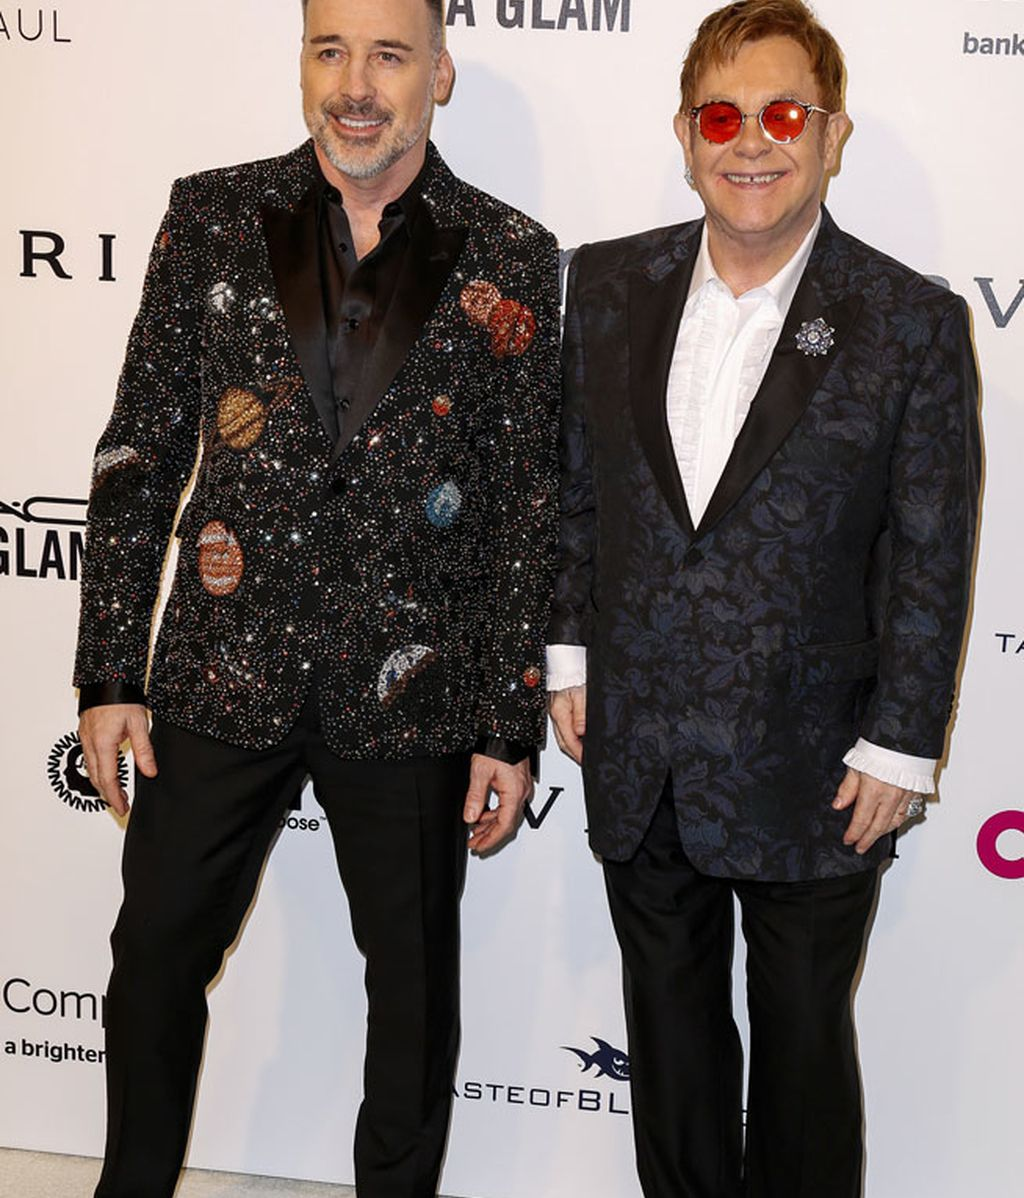 Elton John junto a su marido David Furnish, anfitriones de la fiesta